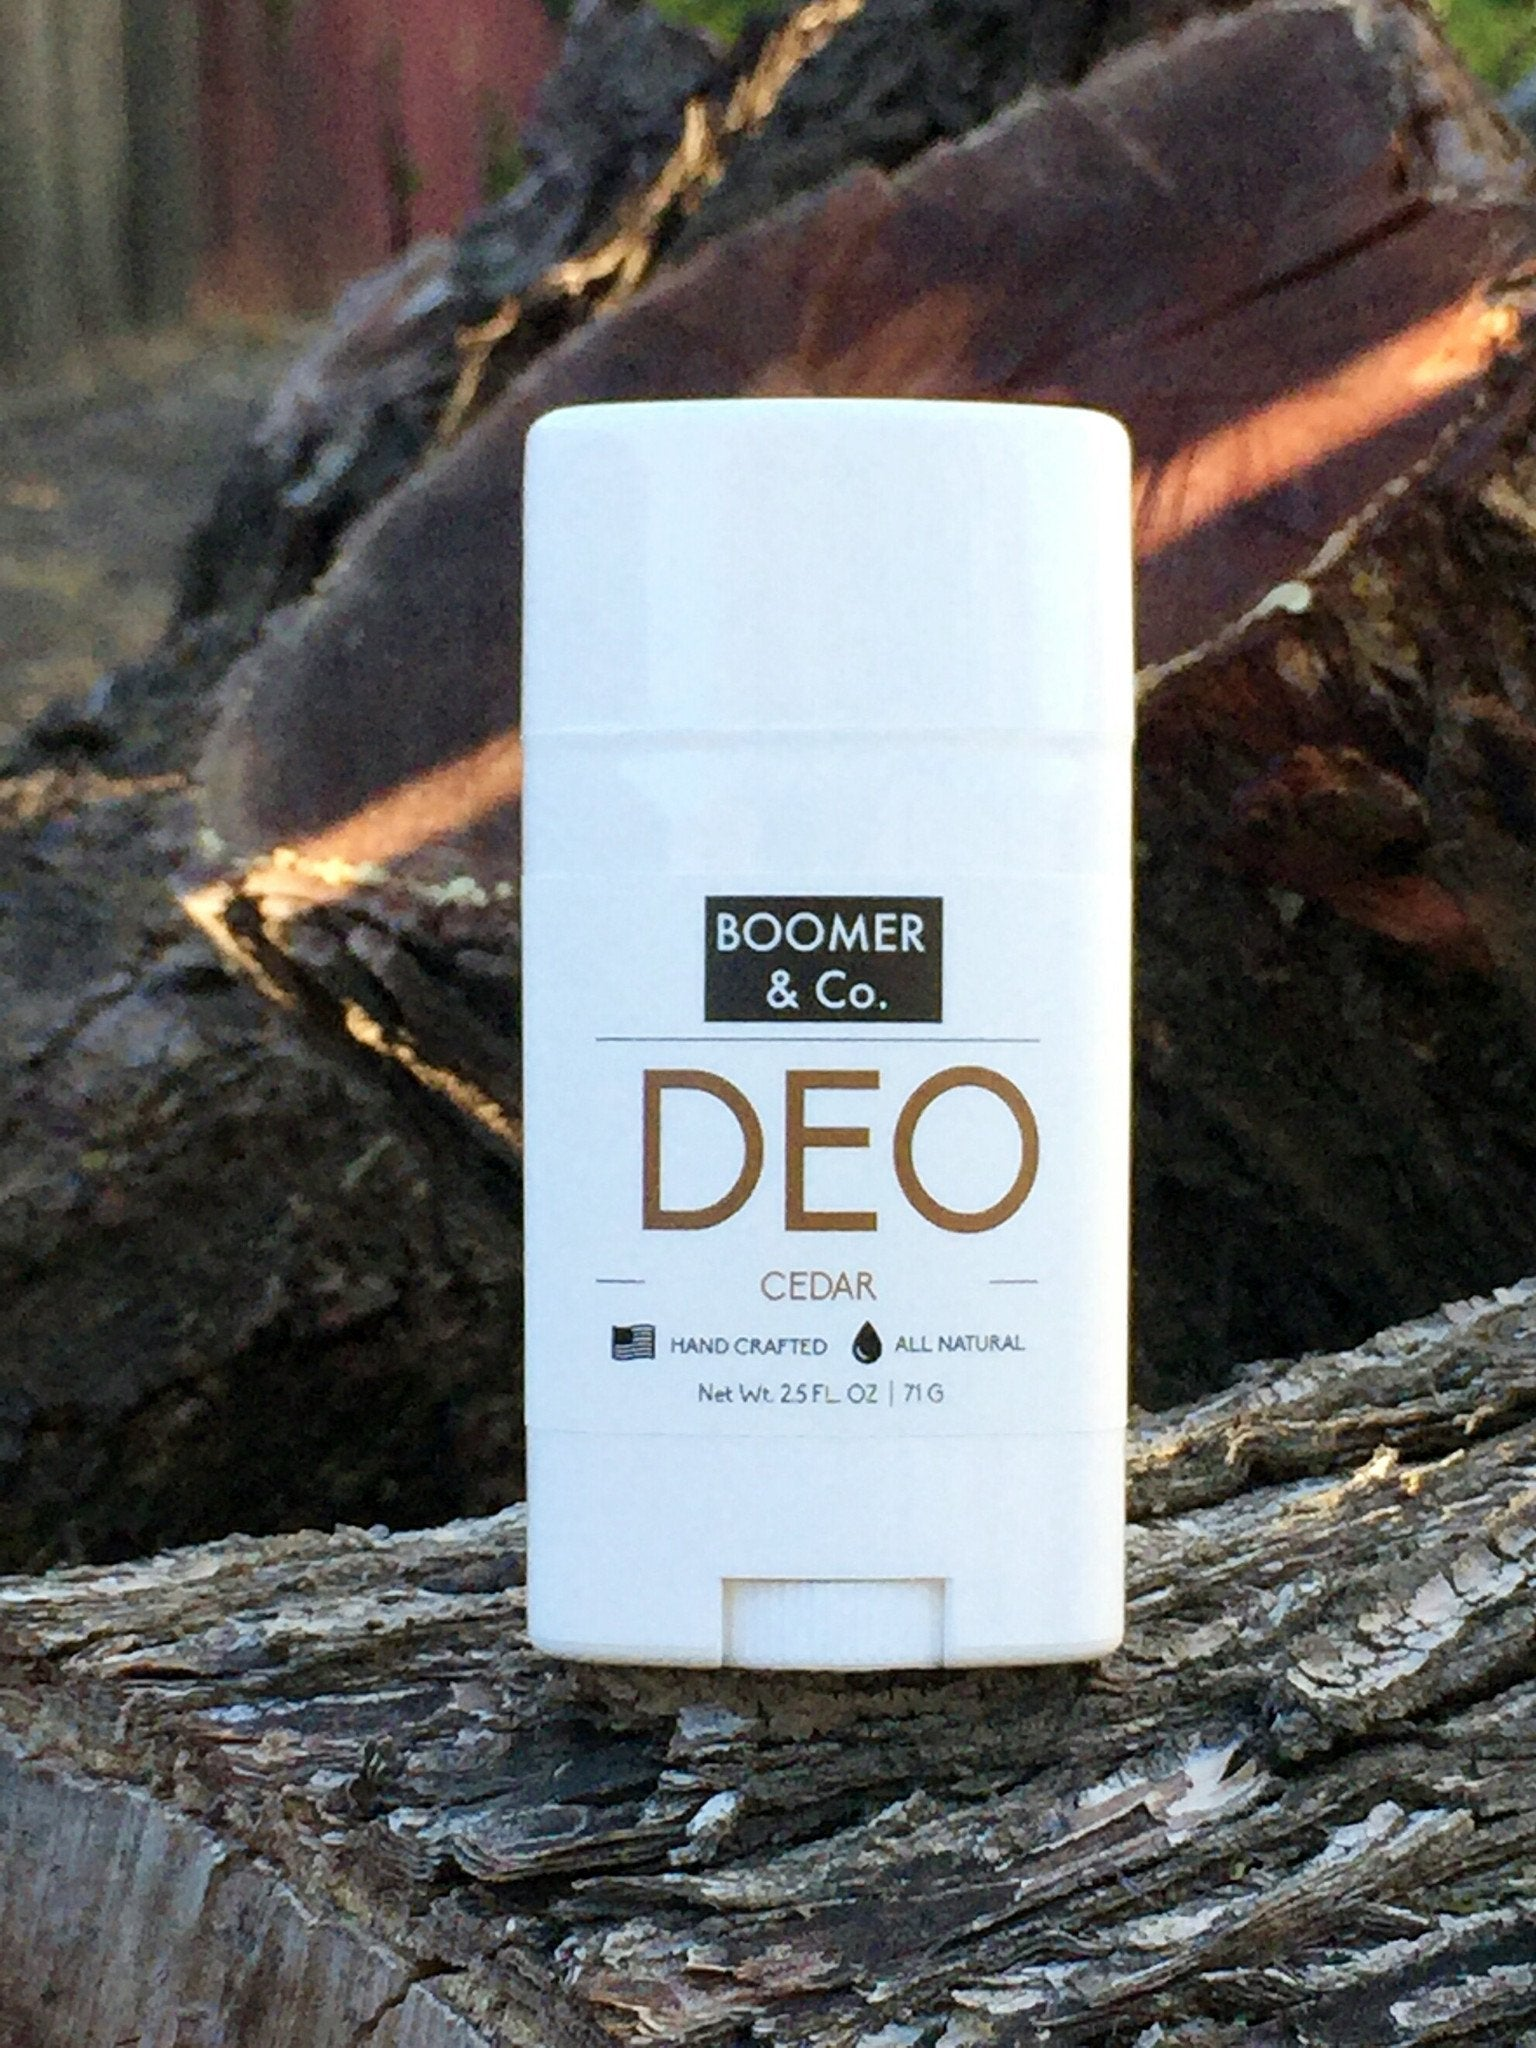 Cedar Deodorant All Natural Hand Crafted